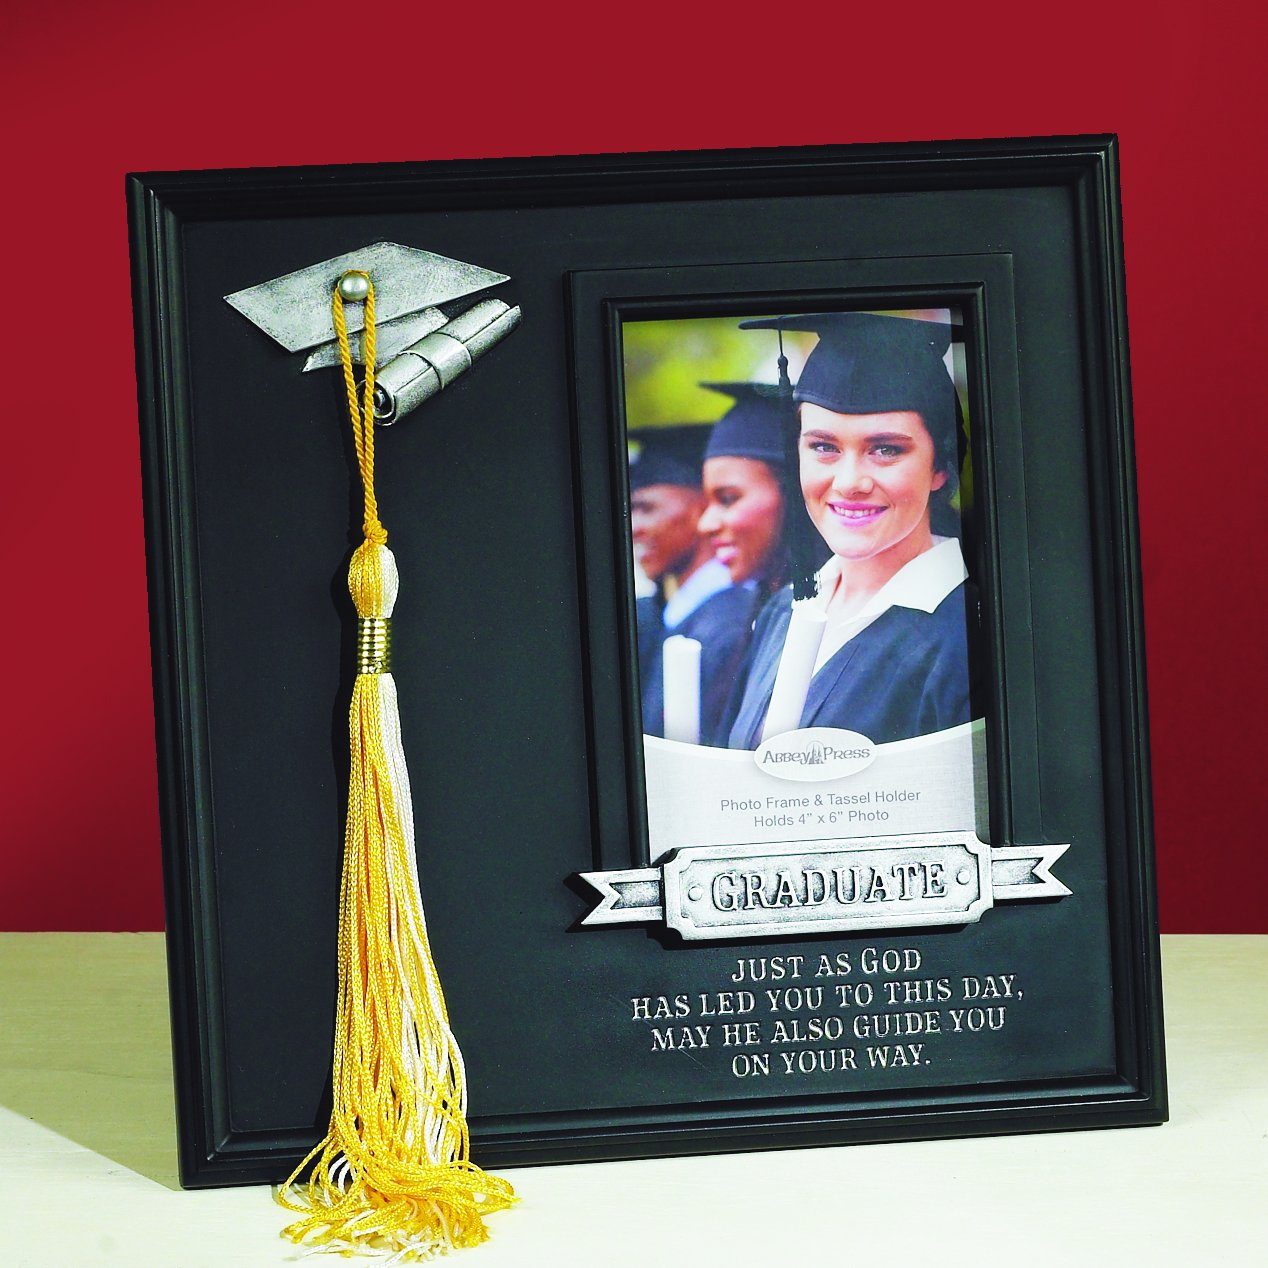 Amazon.com - Abbey Gift Graduate Frame with Tassel Hook -